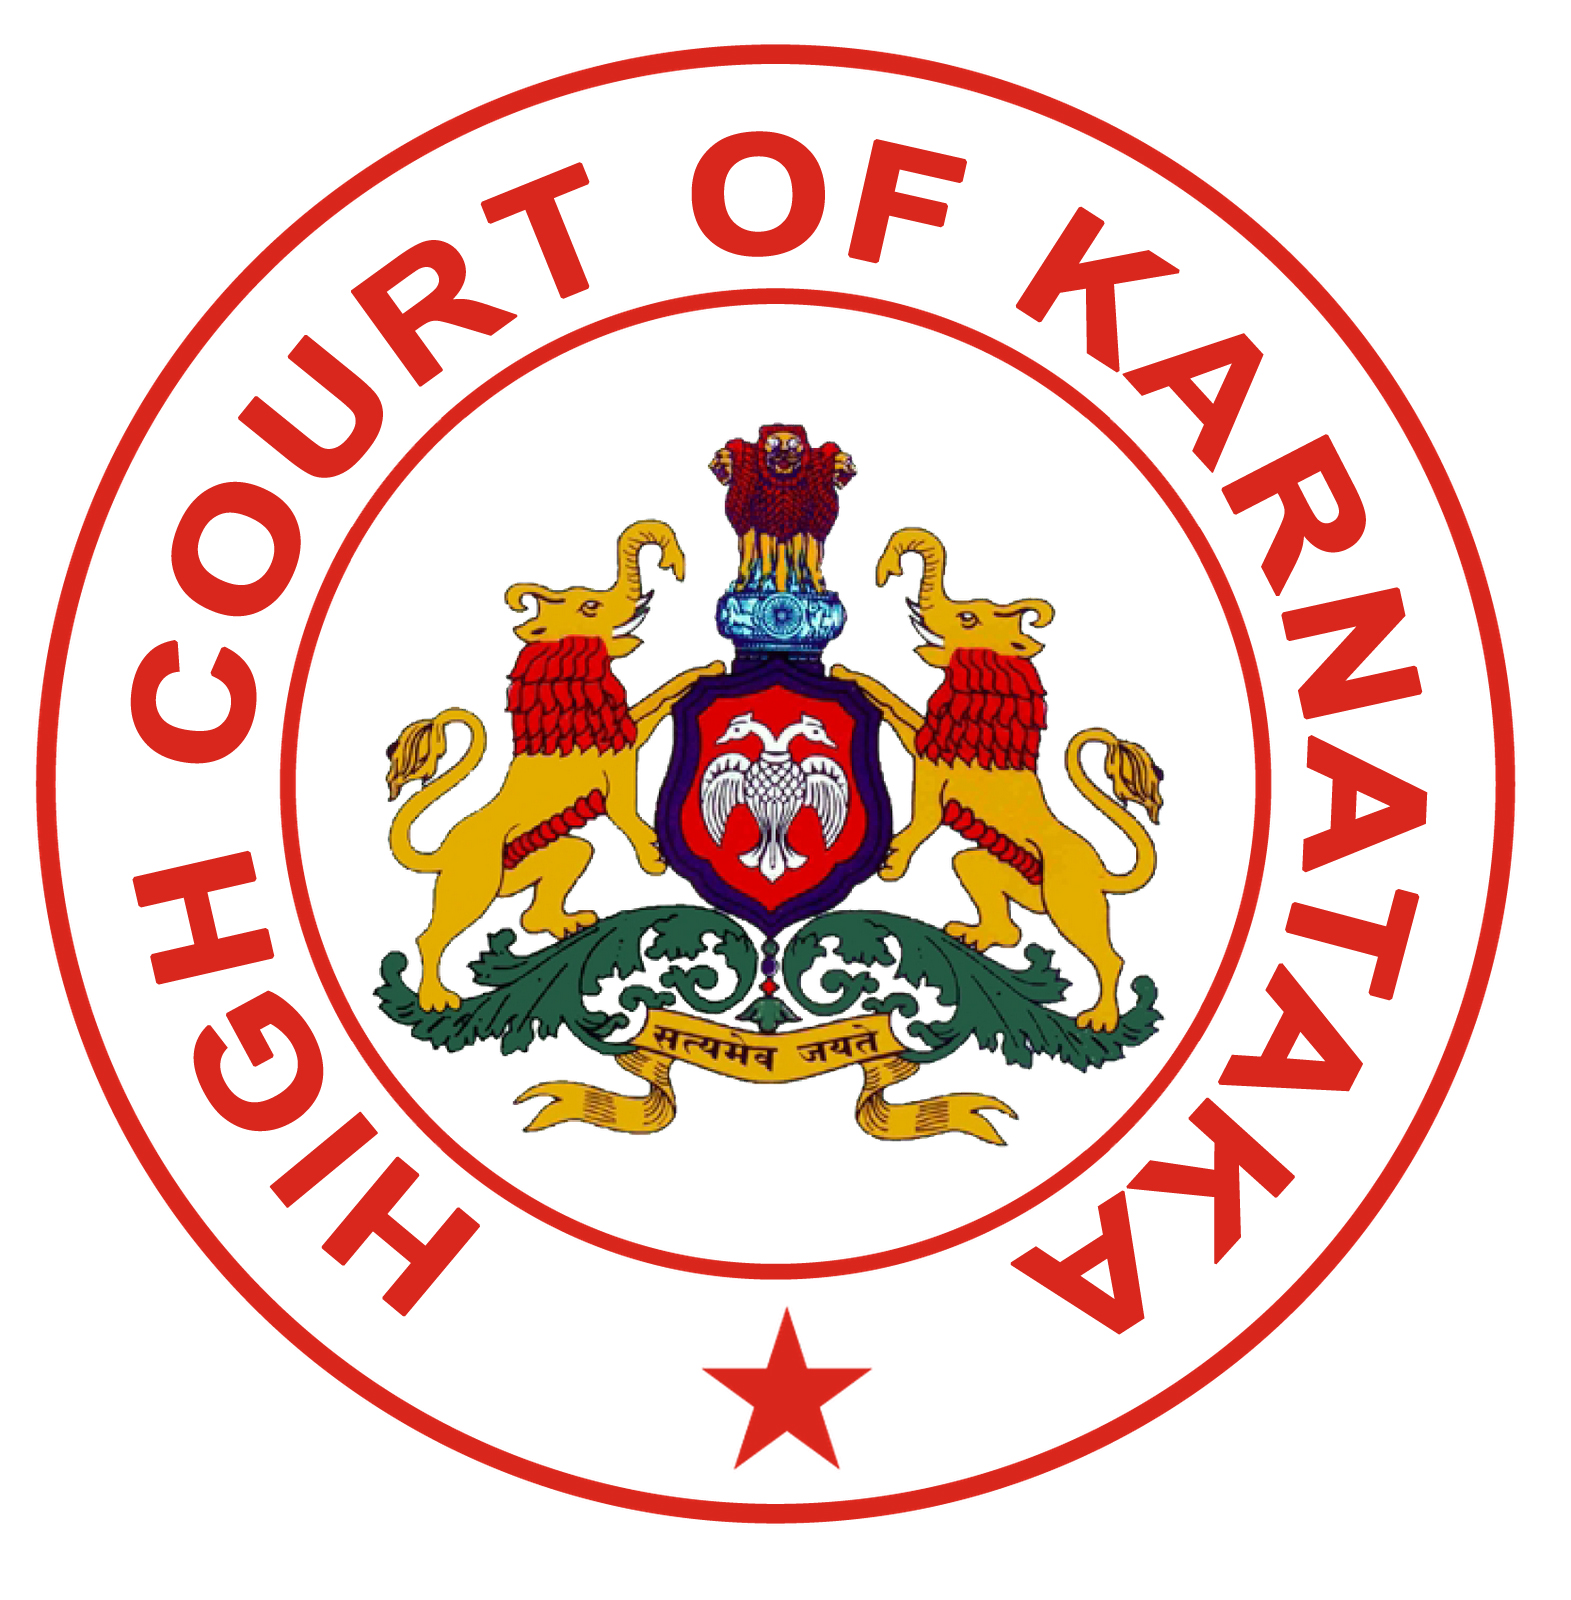 High Court of Karnataka -:: C A L E N D A R - 2 0 1 9 ::-